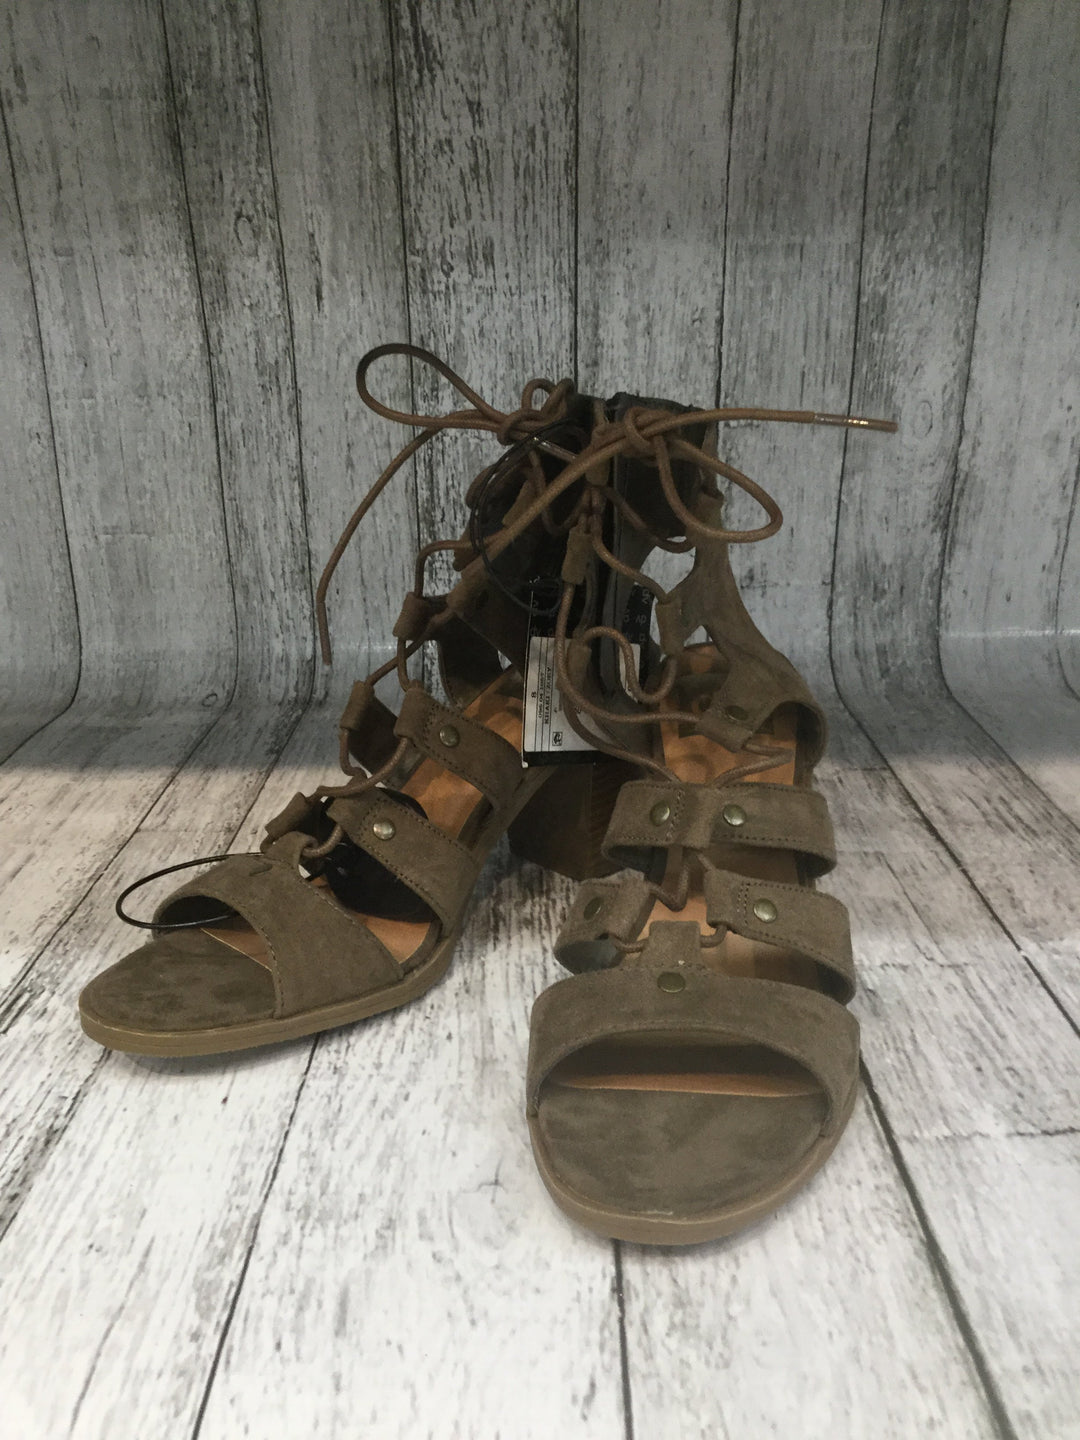 Primary Photo - brand: dolce vita , style: sandals high , color: taupe , size: 8 , other info: new! , sku: 128-4287-47433